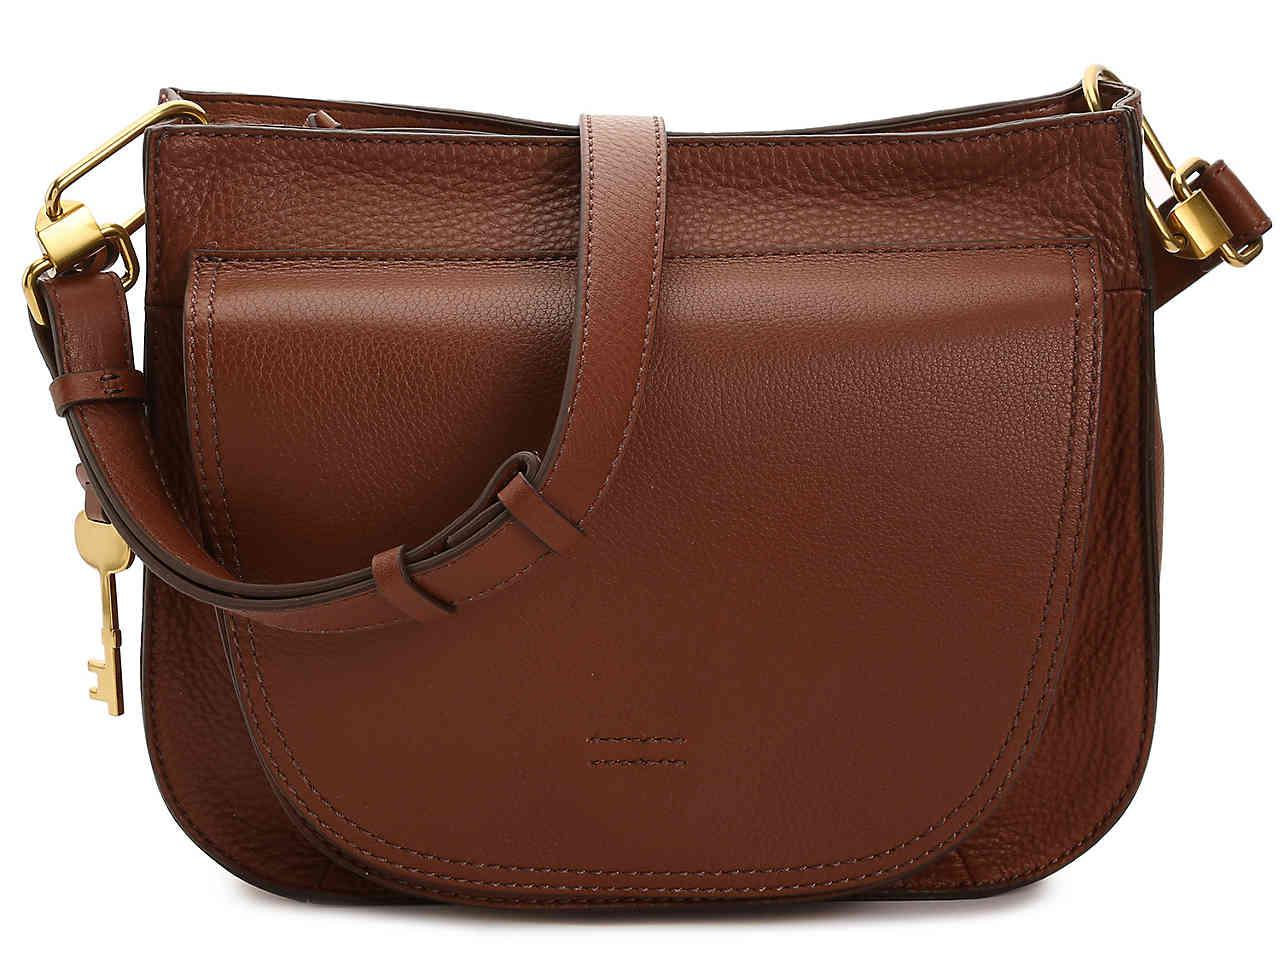 e0017a68bff15 Fossil Camden Leather Crossbody Bag in Brown - Lyst